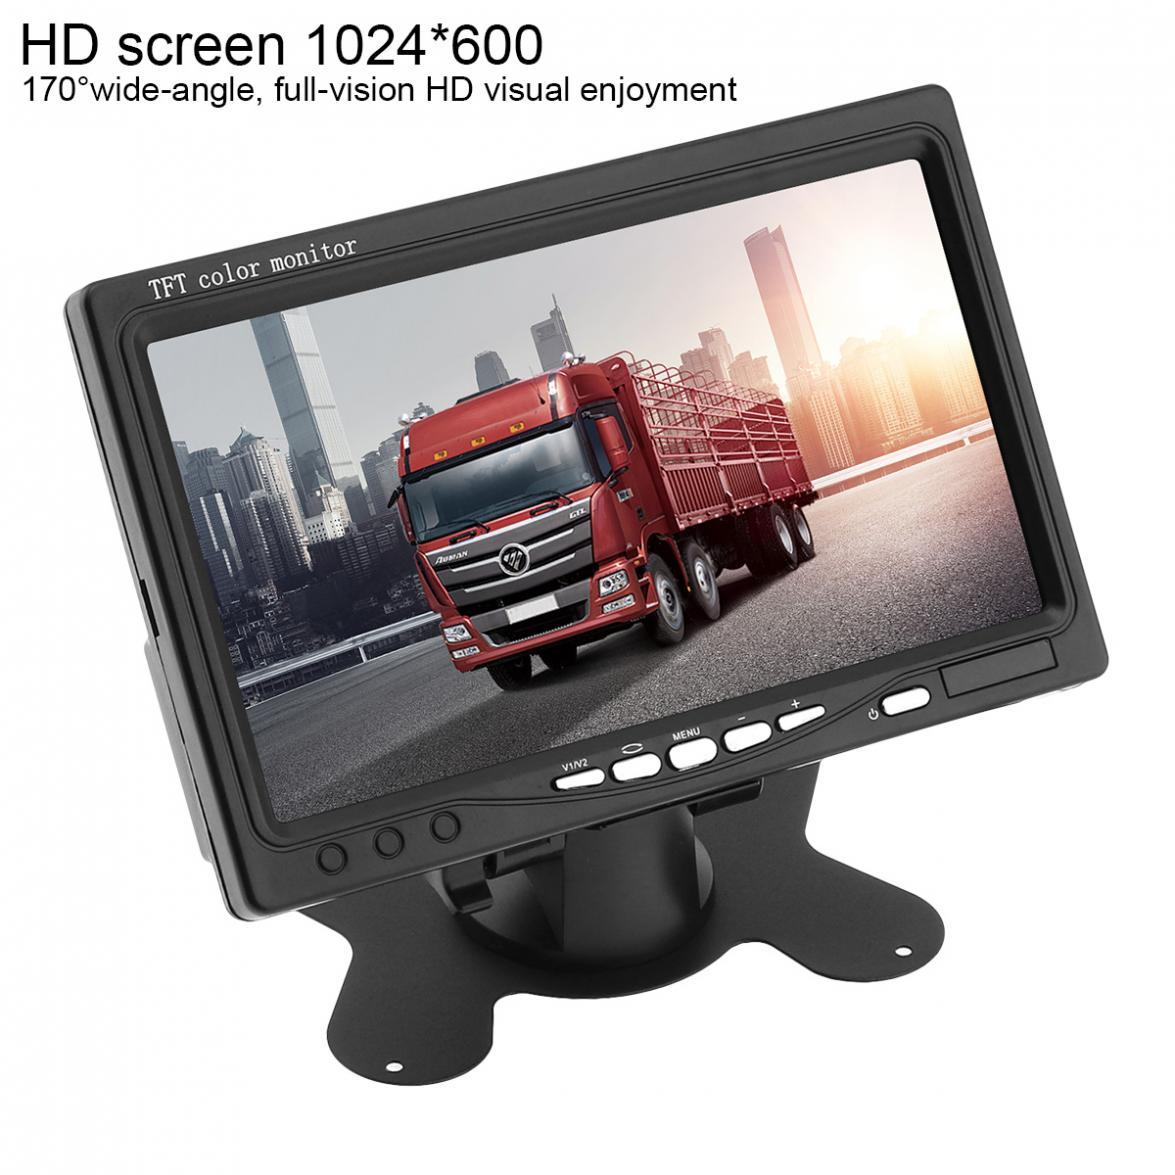 7 Inch 1024x600 12V HD TFT LCD Car VGA Home Monitor Bright Color VGA Interface AV Auto Video Player PAL / NTSC / SCAME-in Car Monitors from Automobiles & Motorcycles    3